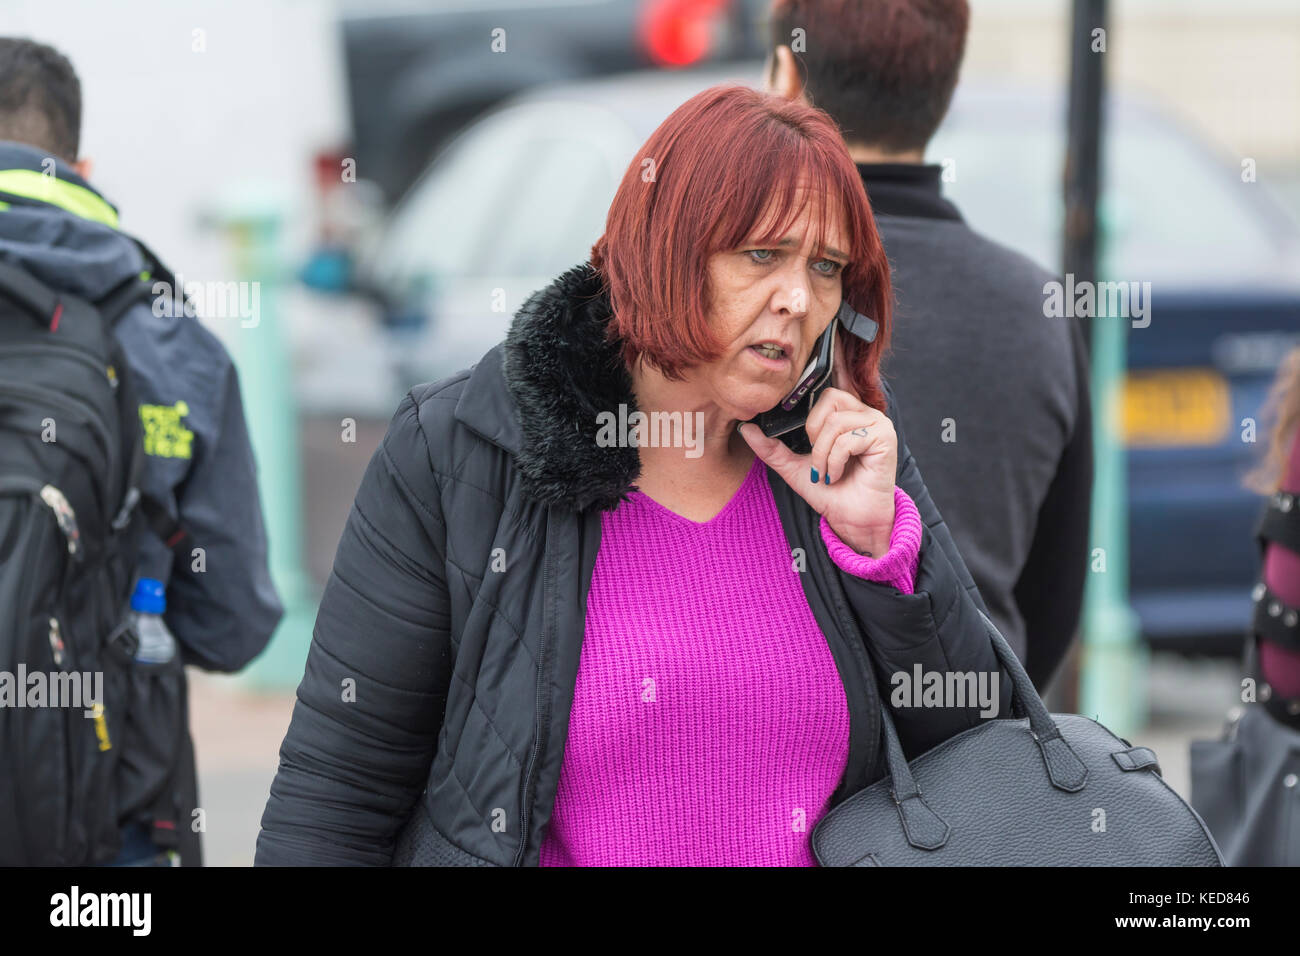 Middle aged woman speaking on a mobile phone while walking outside in the UK. - Stock Image